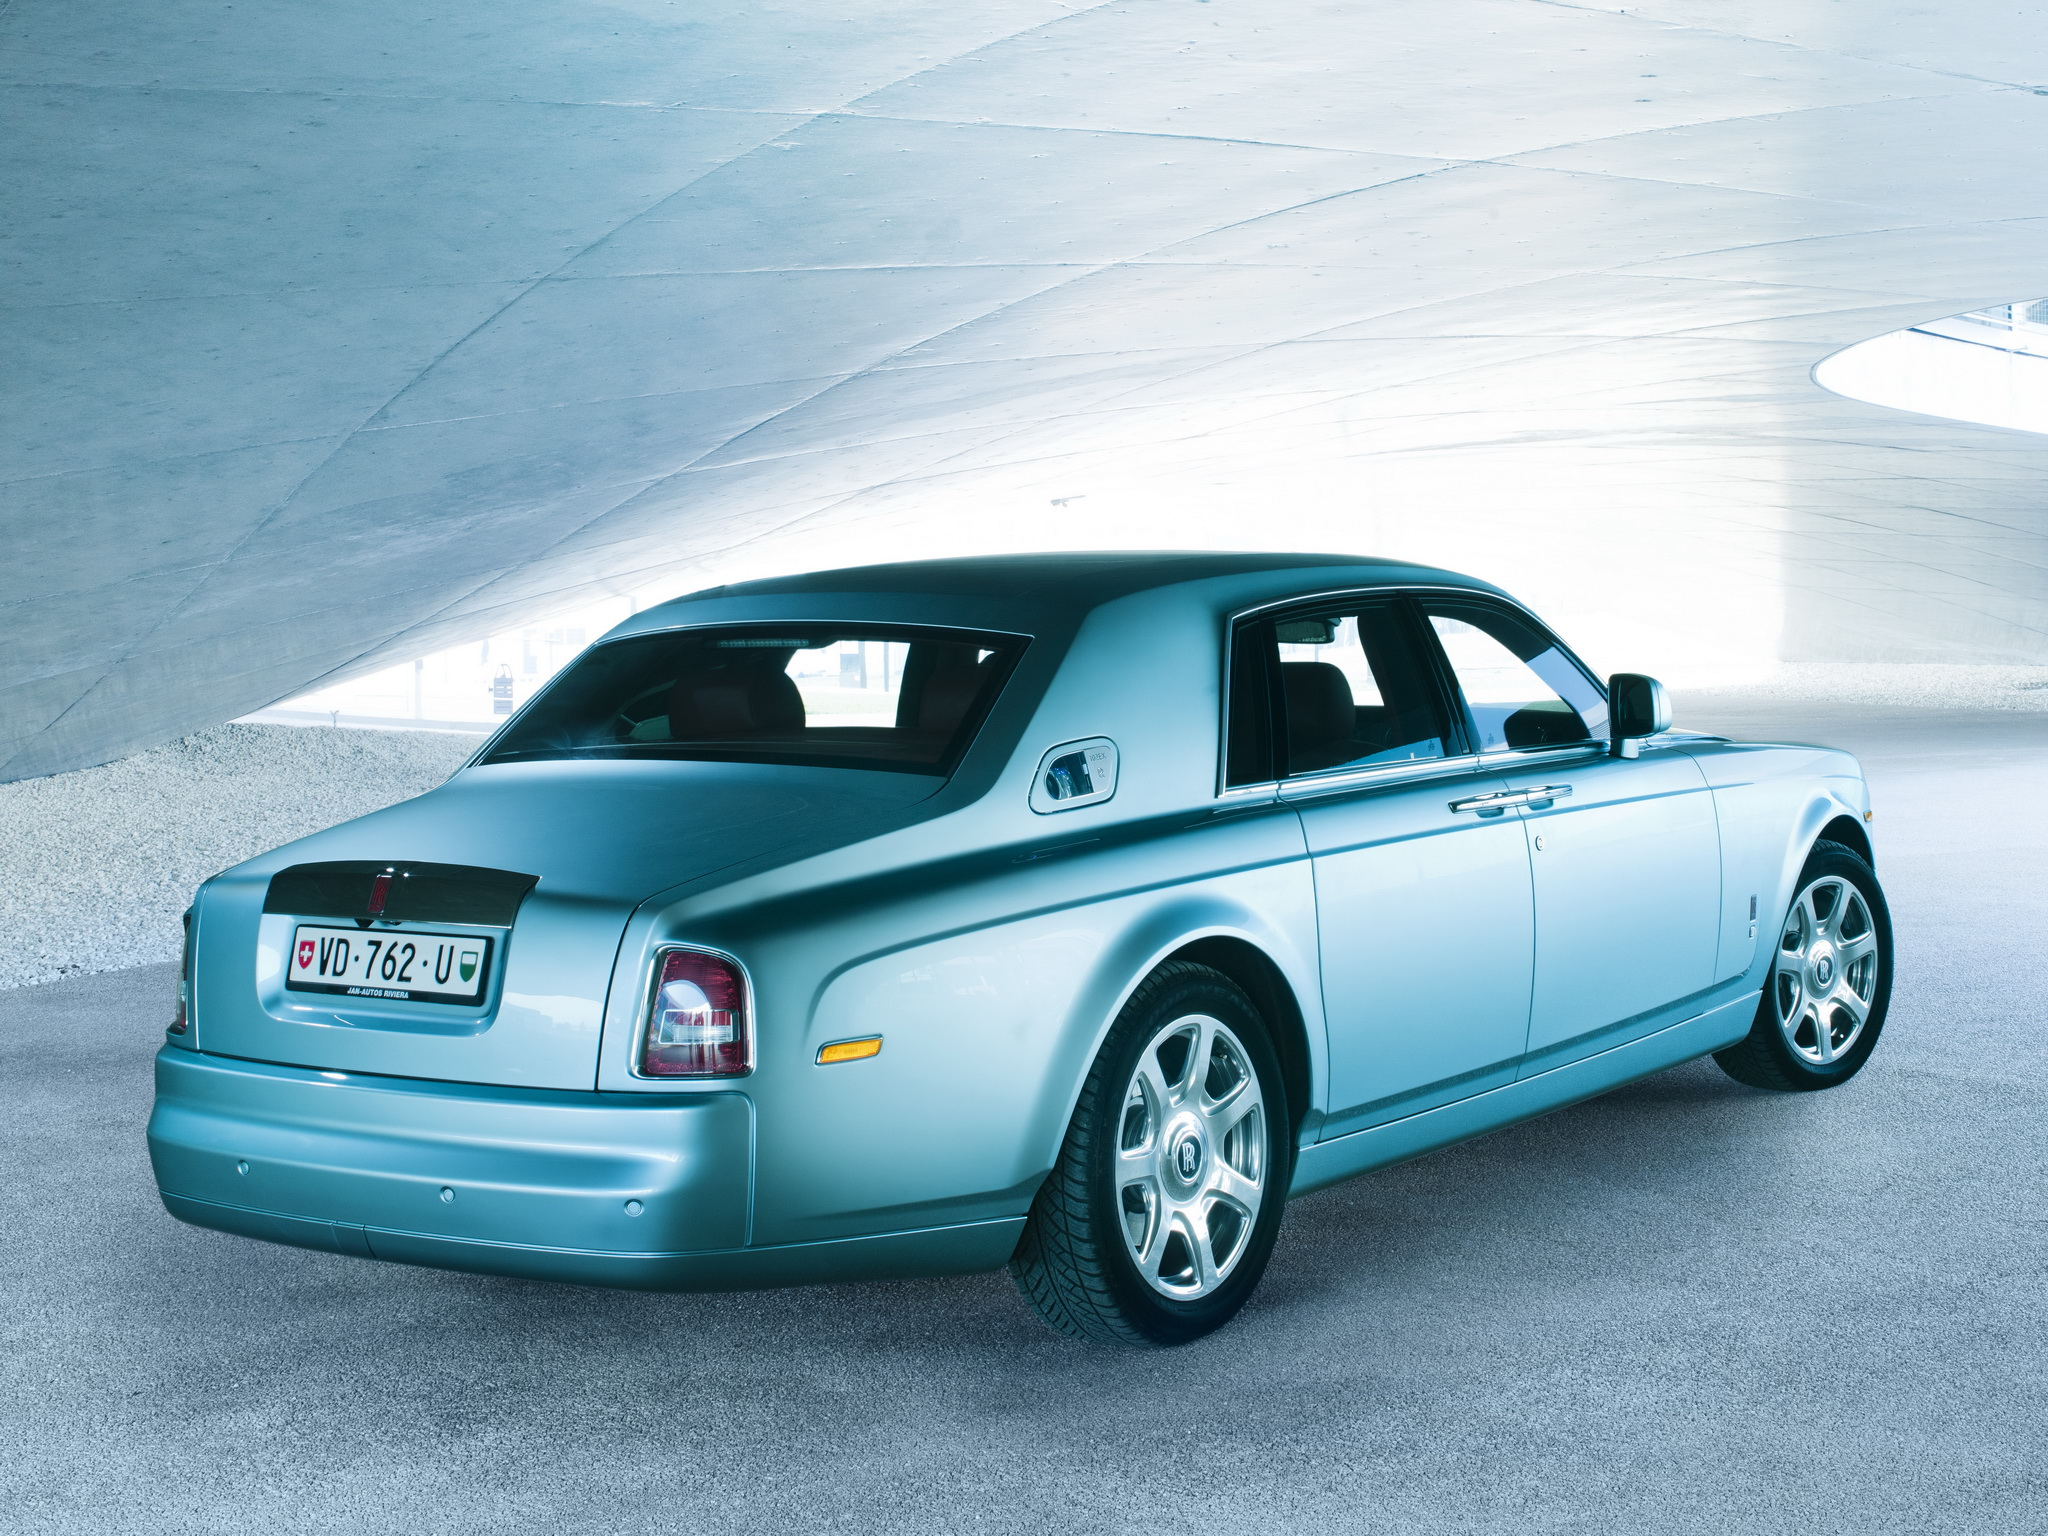 2019 Rolls Royce 102EX Electric Concept photo - 4